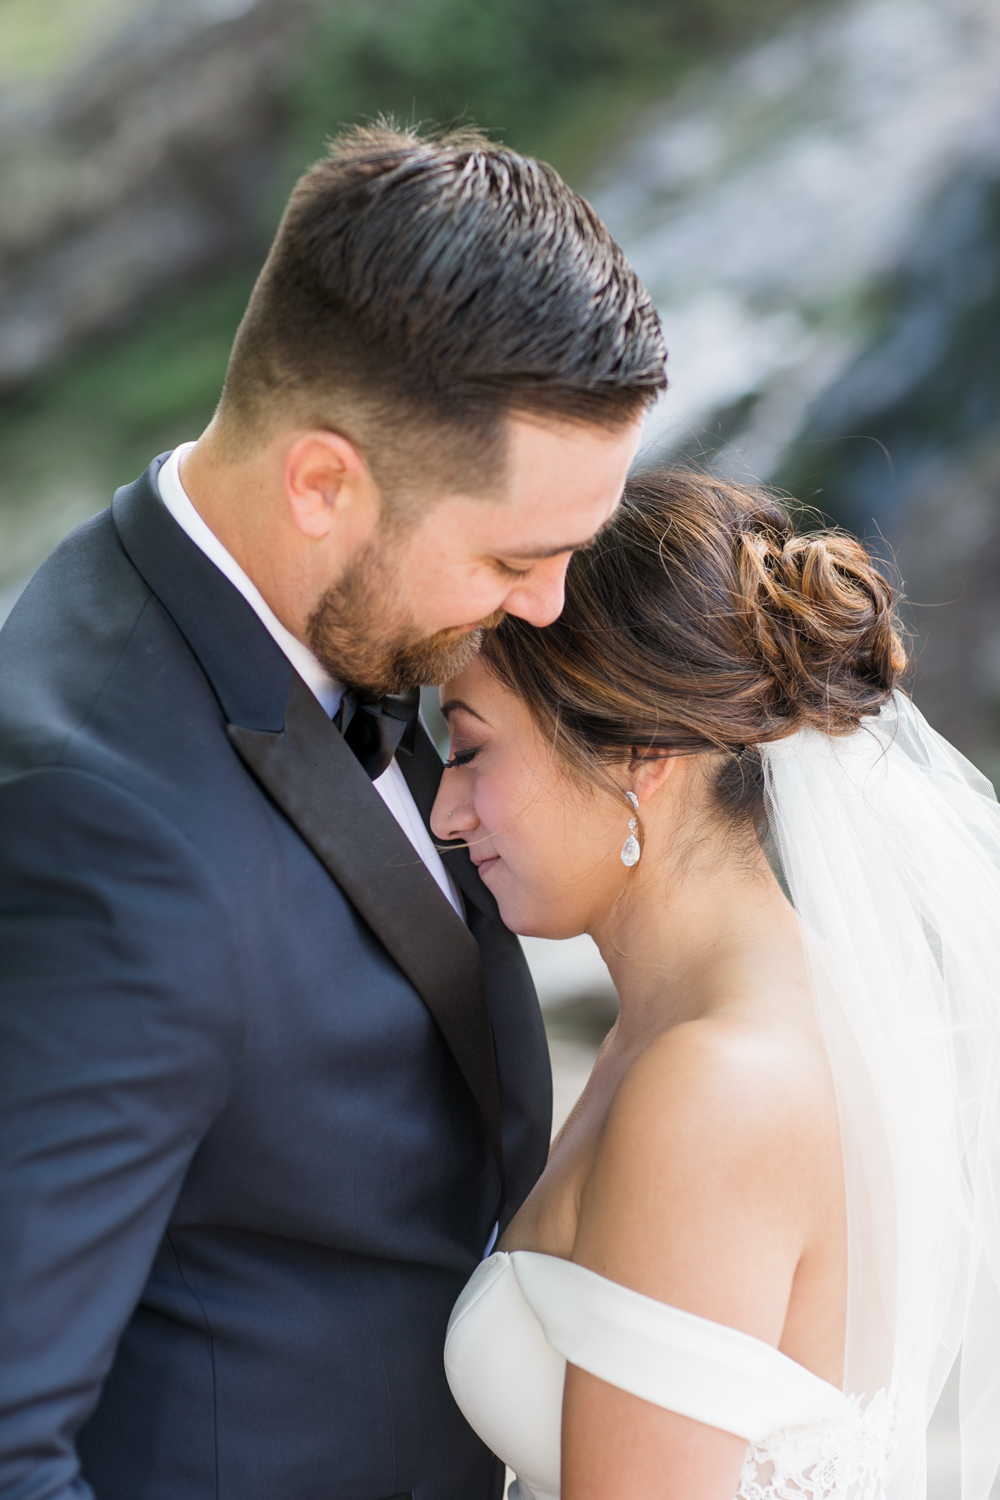 bride and groom portrait close together showing a short veil of the bride and an up style hair do